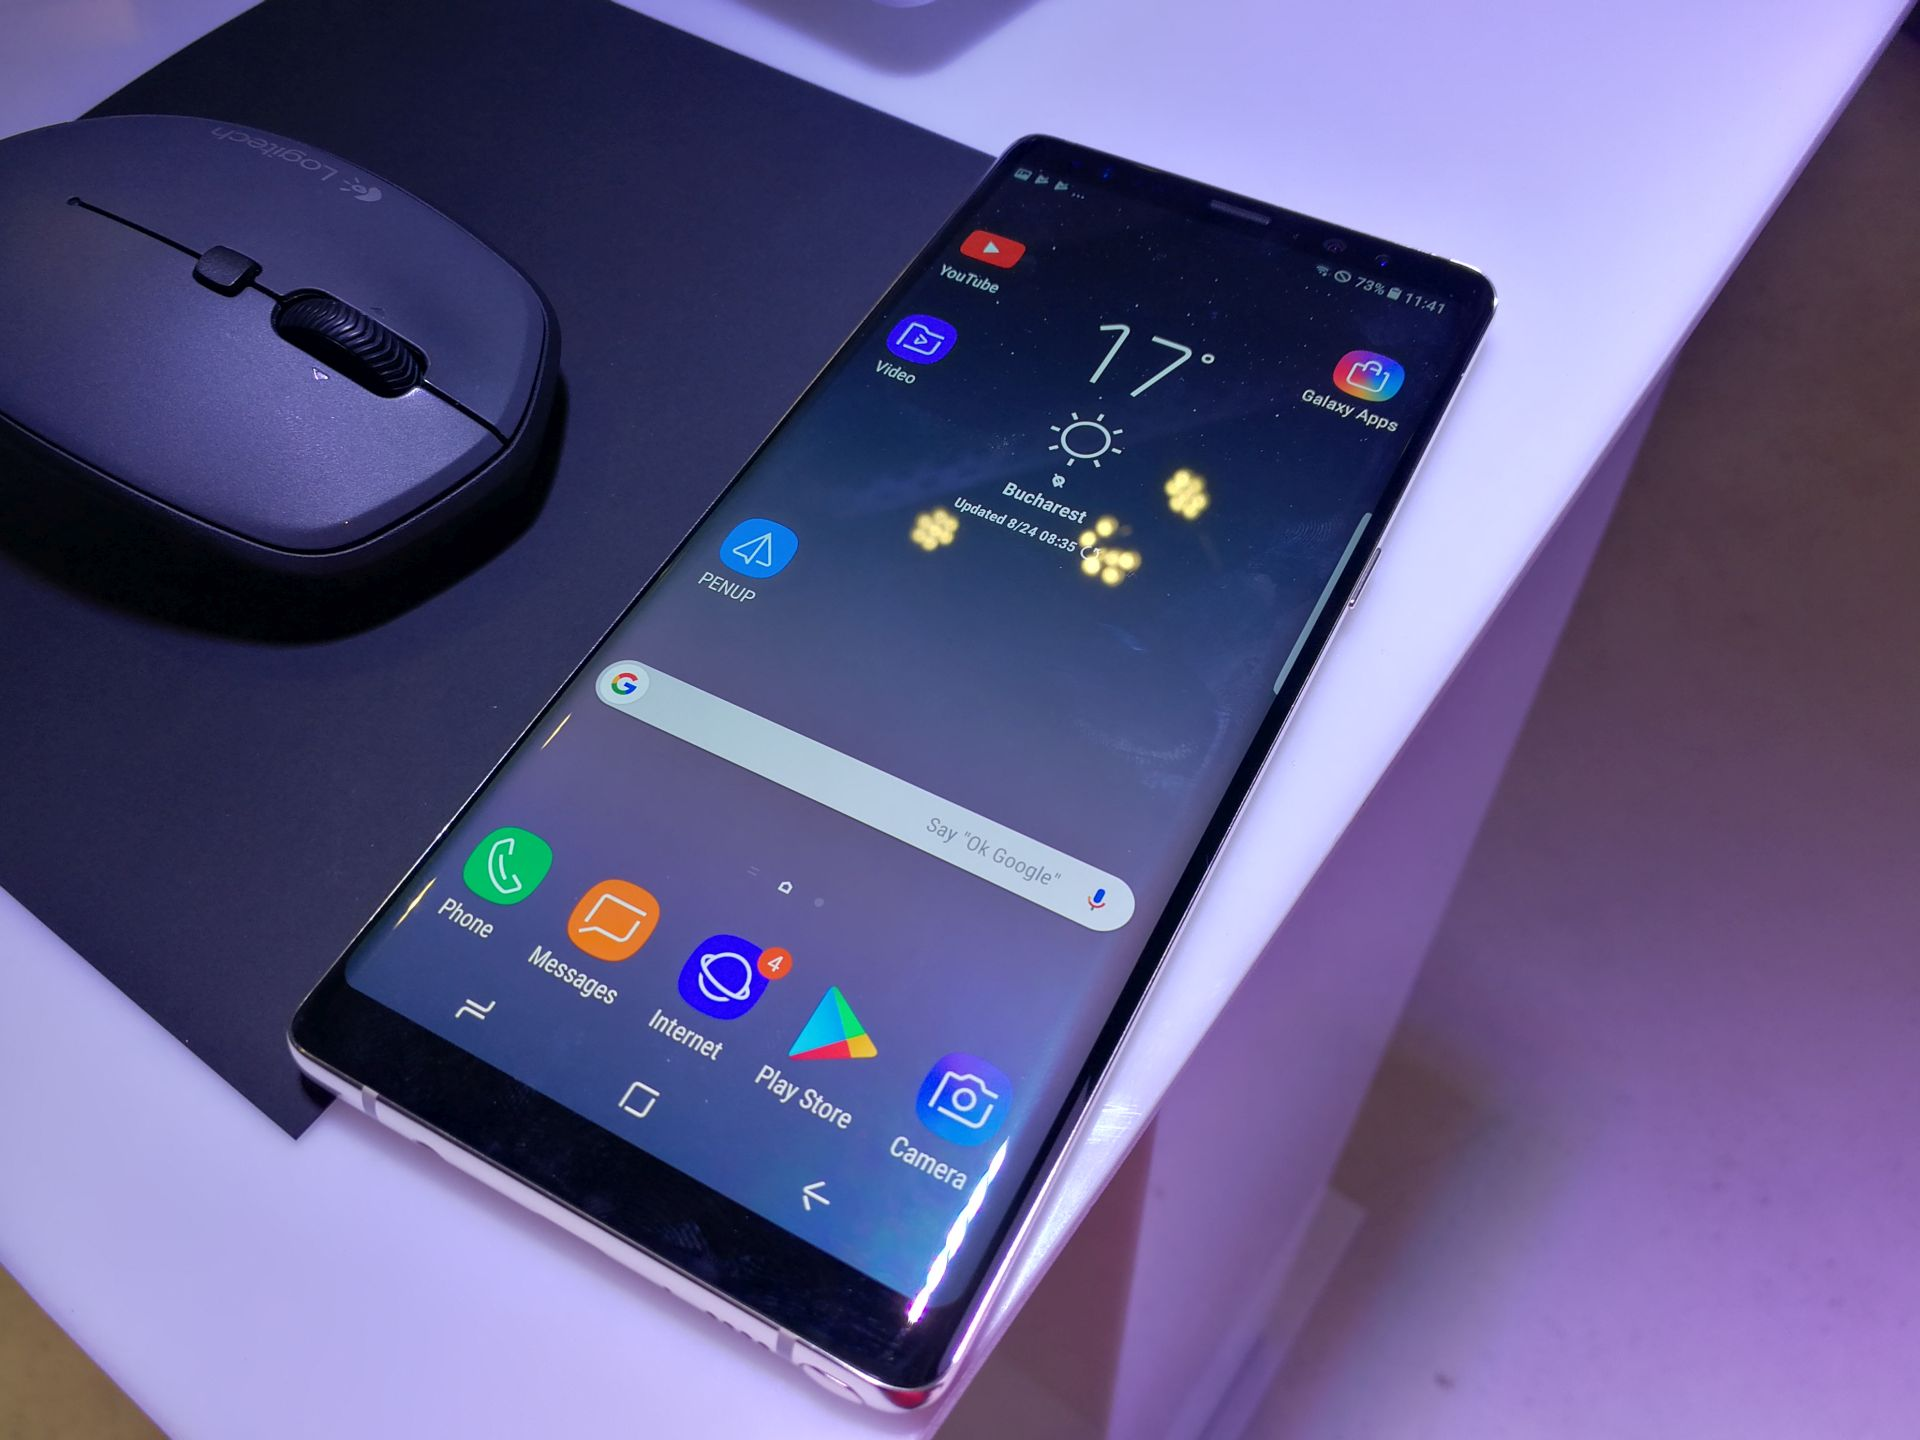 samsung galaxy note 8 hands on review camera tests turns